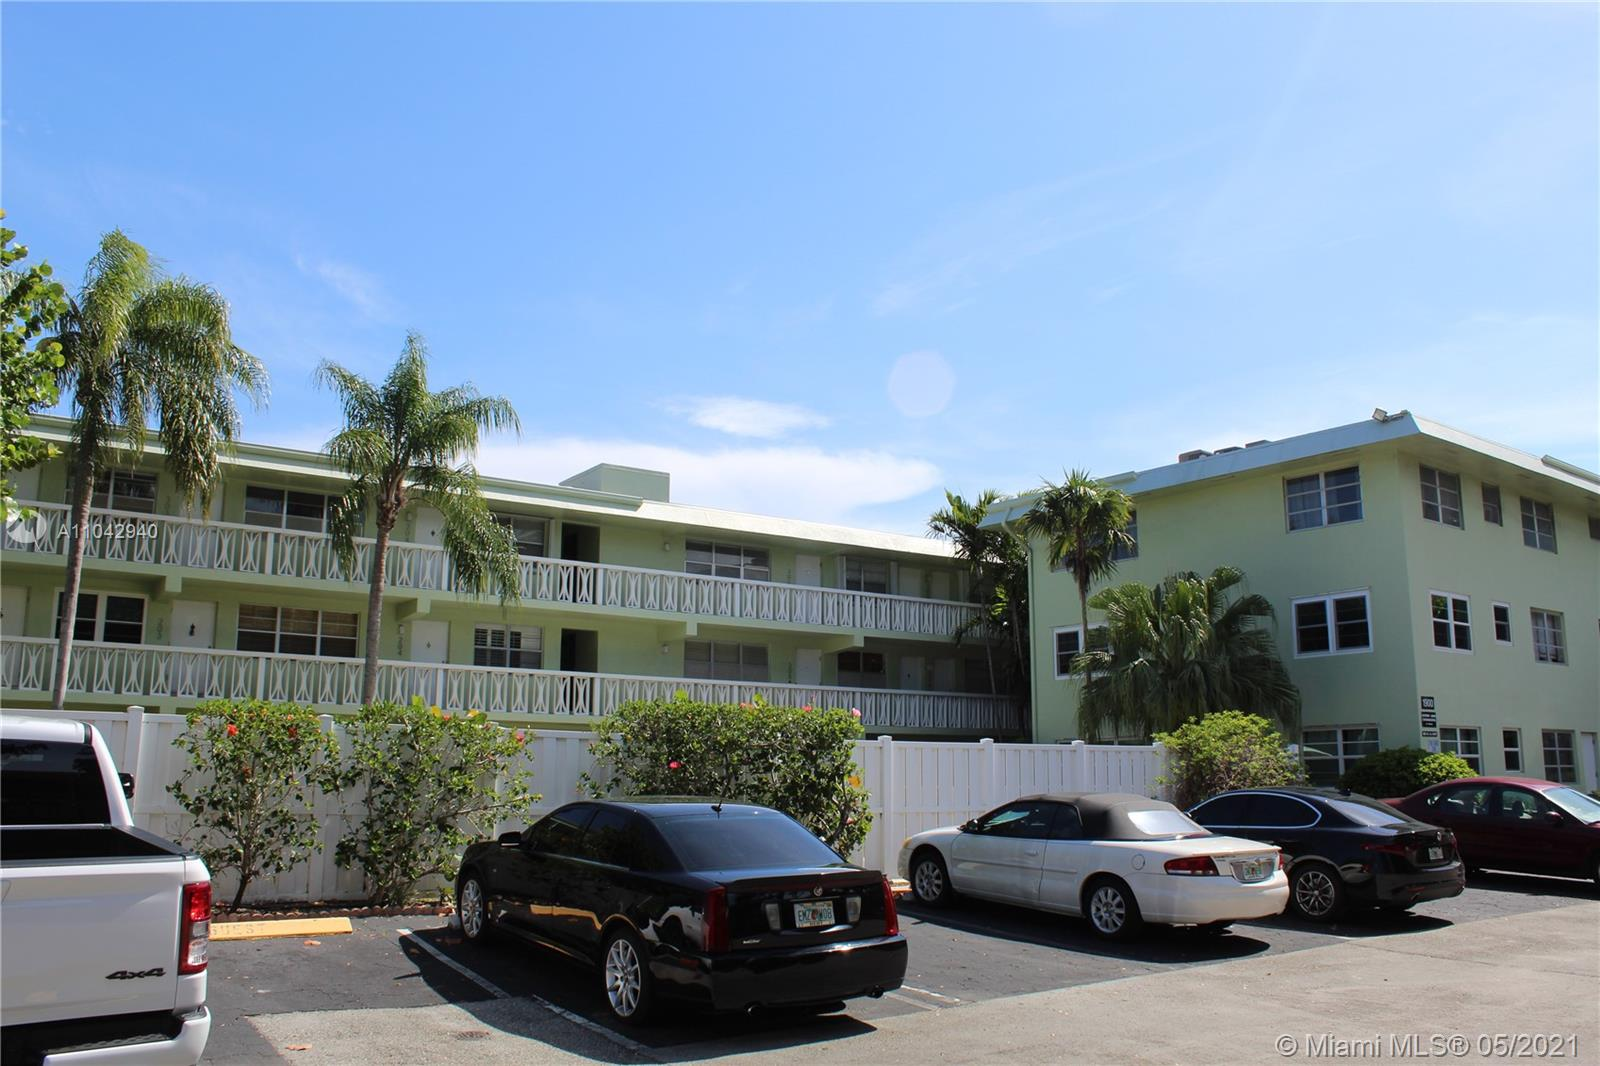 Prime location!! Victoria Park remodeled apartment.1/1. Light and bright with lots of windows. Corner unit with pretty pool views. Updated kitchen and bathroom. On site coin-operated laundry. Can rent this unit Unfurnished or Furnished. Lovely landscaped Pool area for you to sit and relax, picnic and even grill.. Minutes from Fort Lauderdale beach, restaurants, shopping and Las Olas Boulevard.